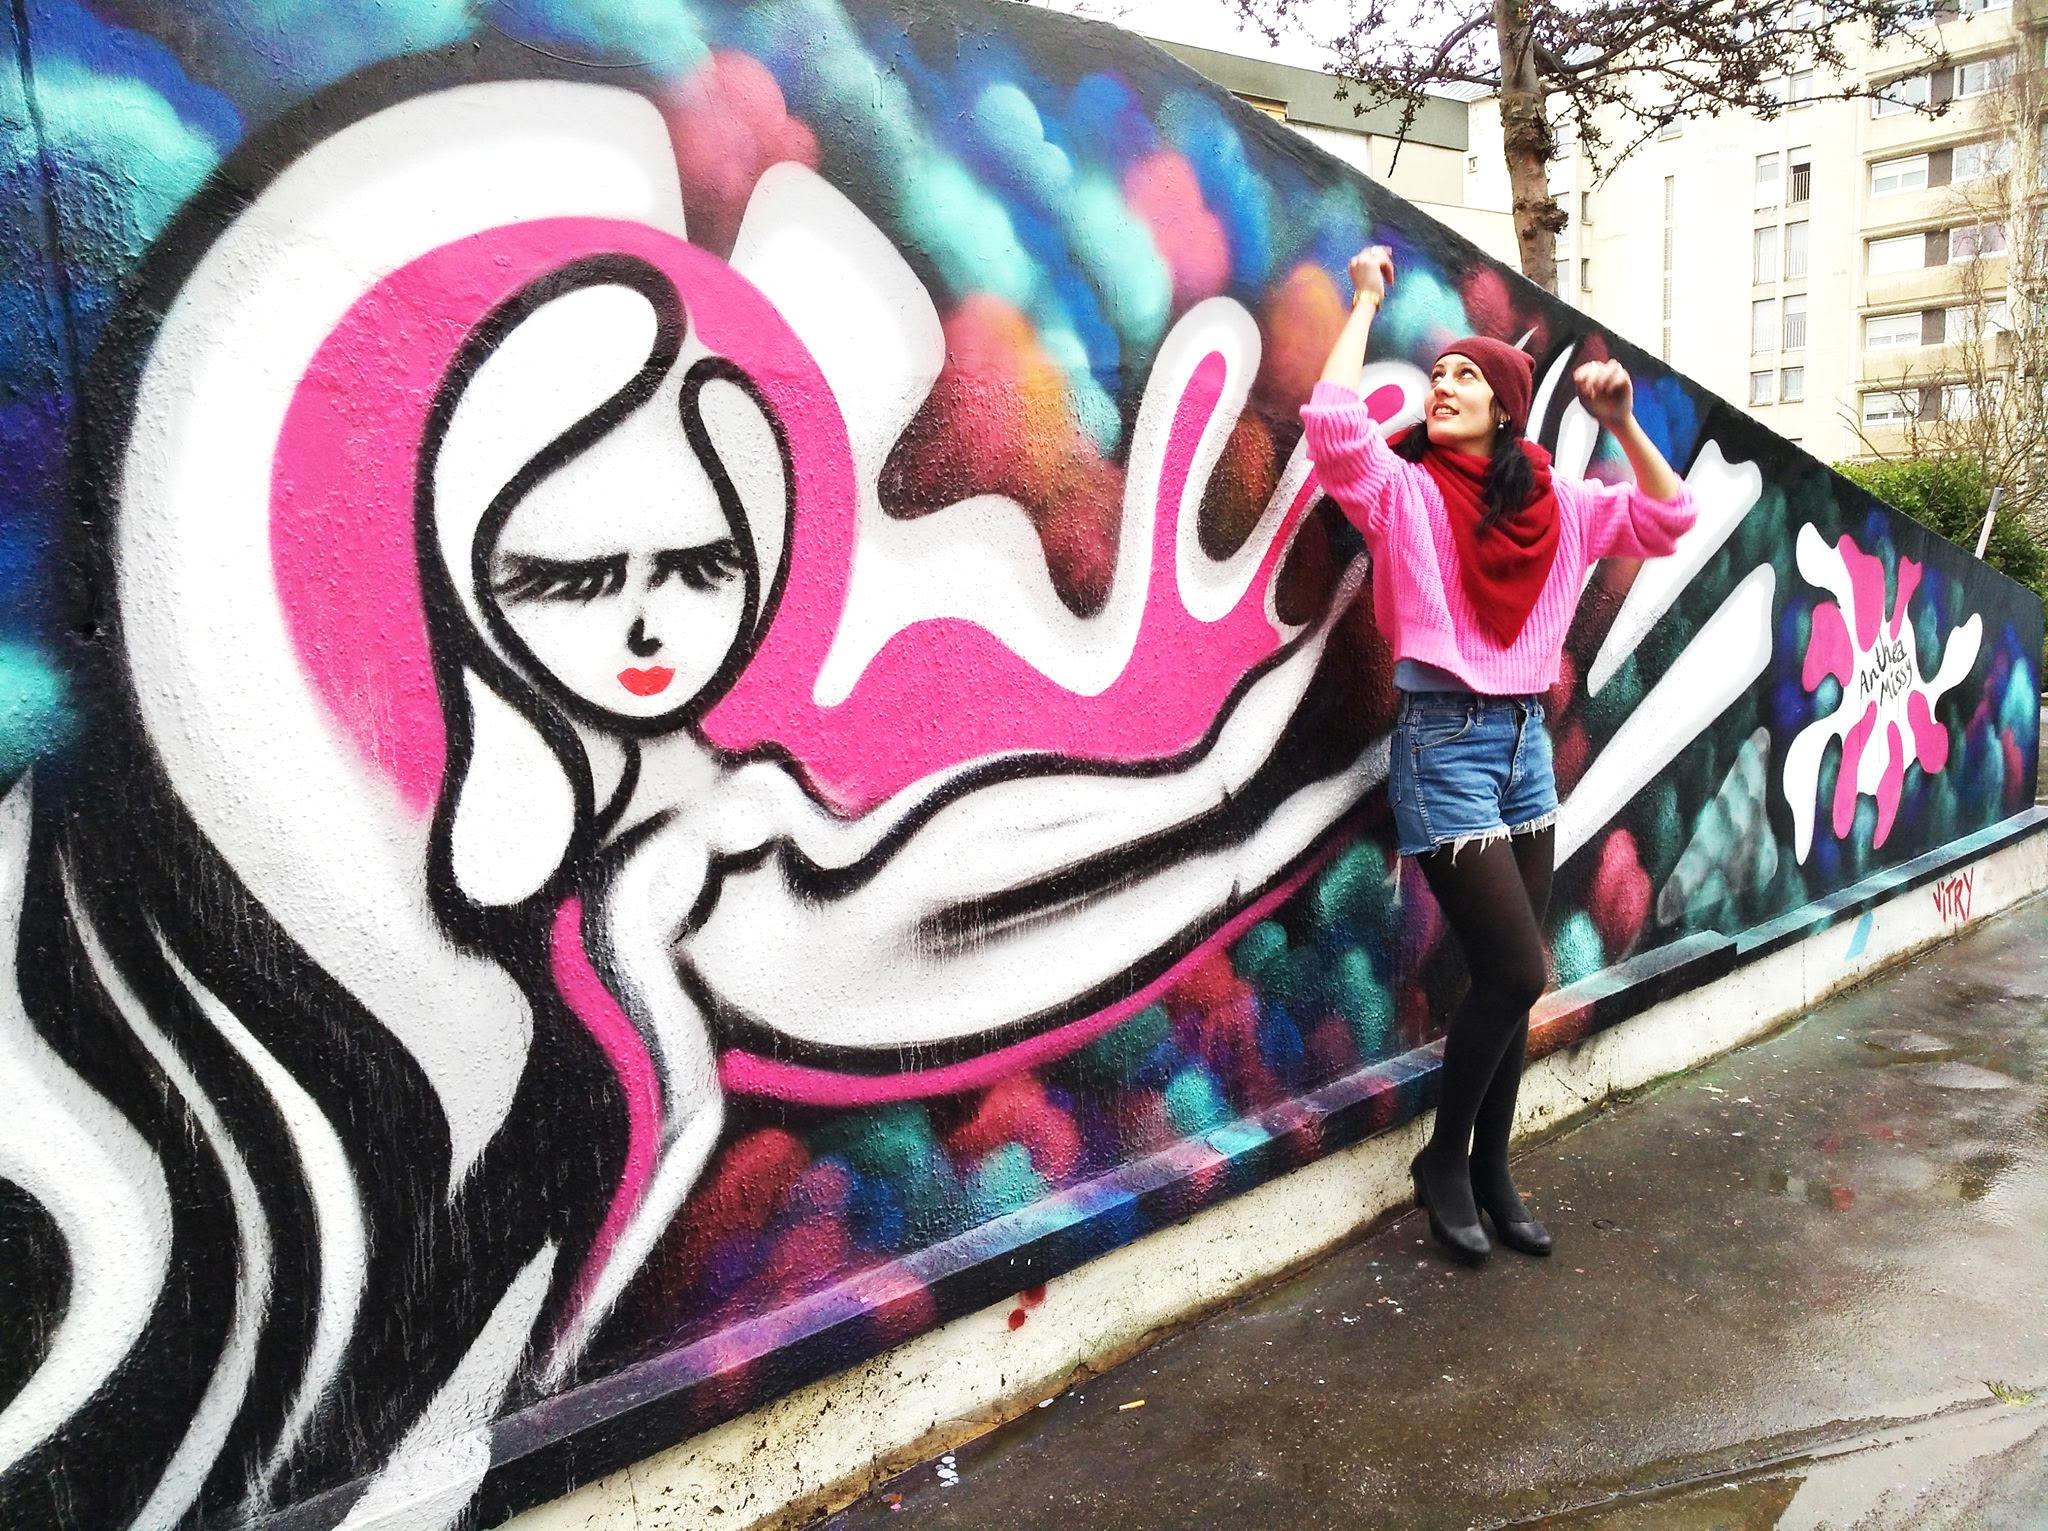 anthea missy vitry street art graffiti 8 mars women day femme journée urbain graffiti 2 women street artist mural